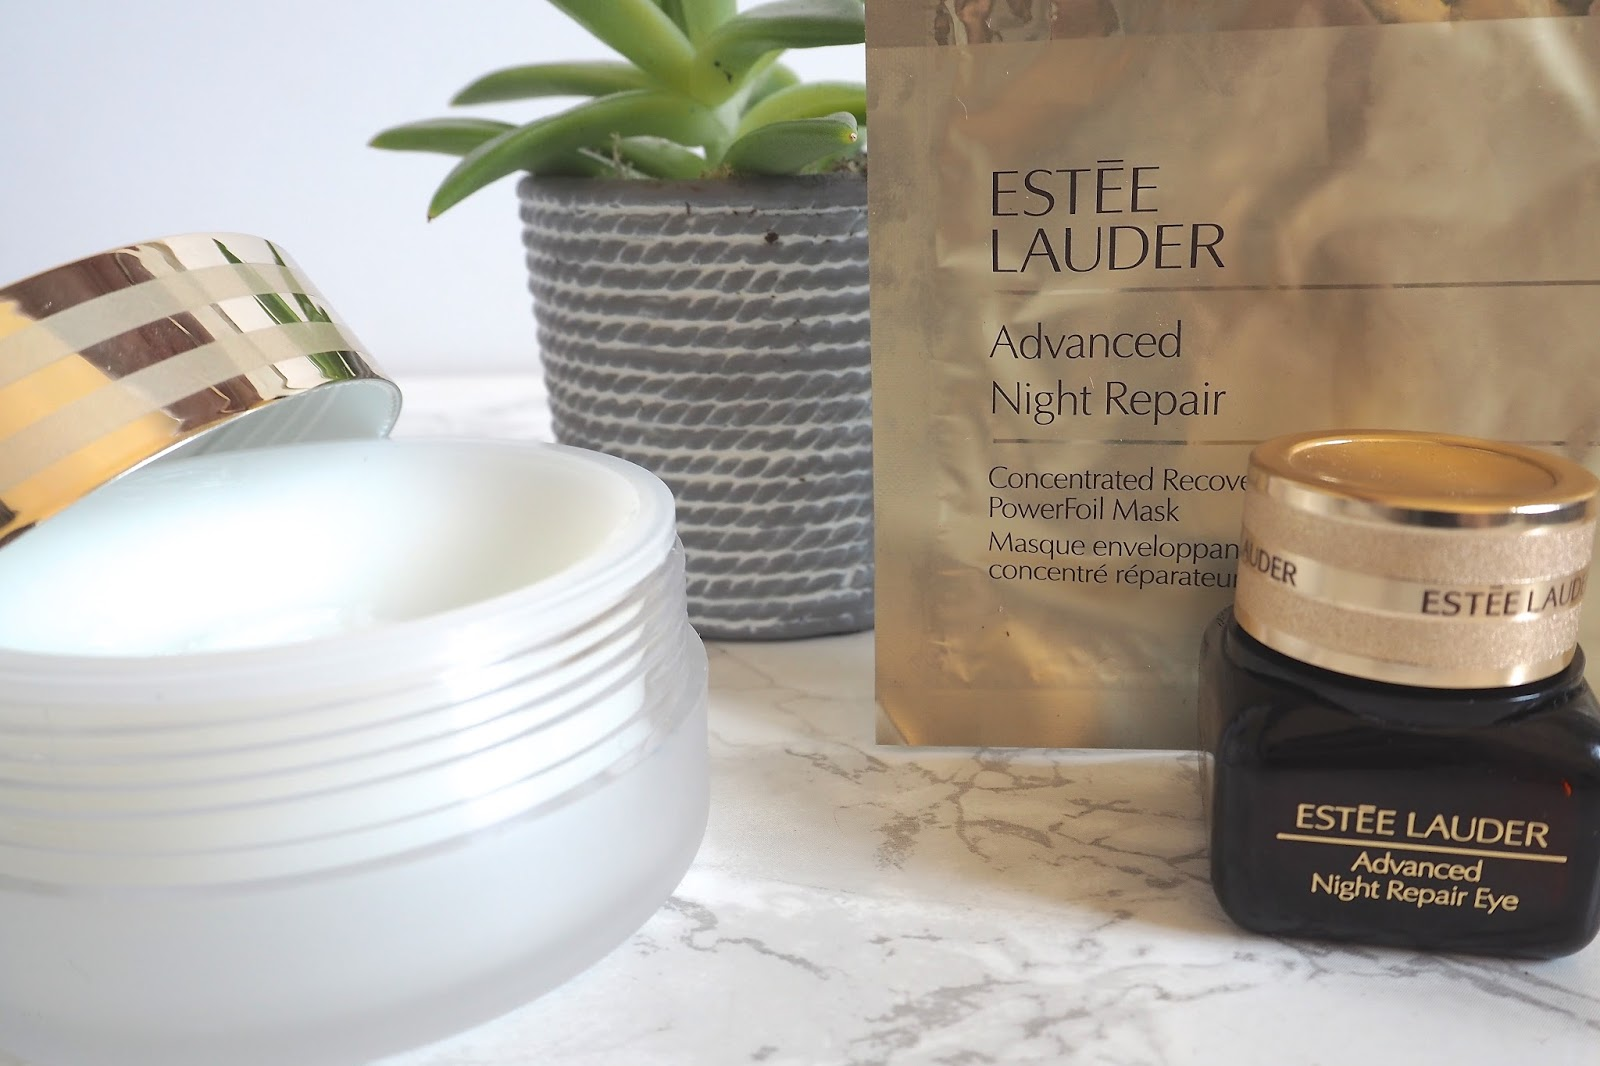 Estée Lauder Advanced Night Repair Skincare